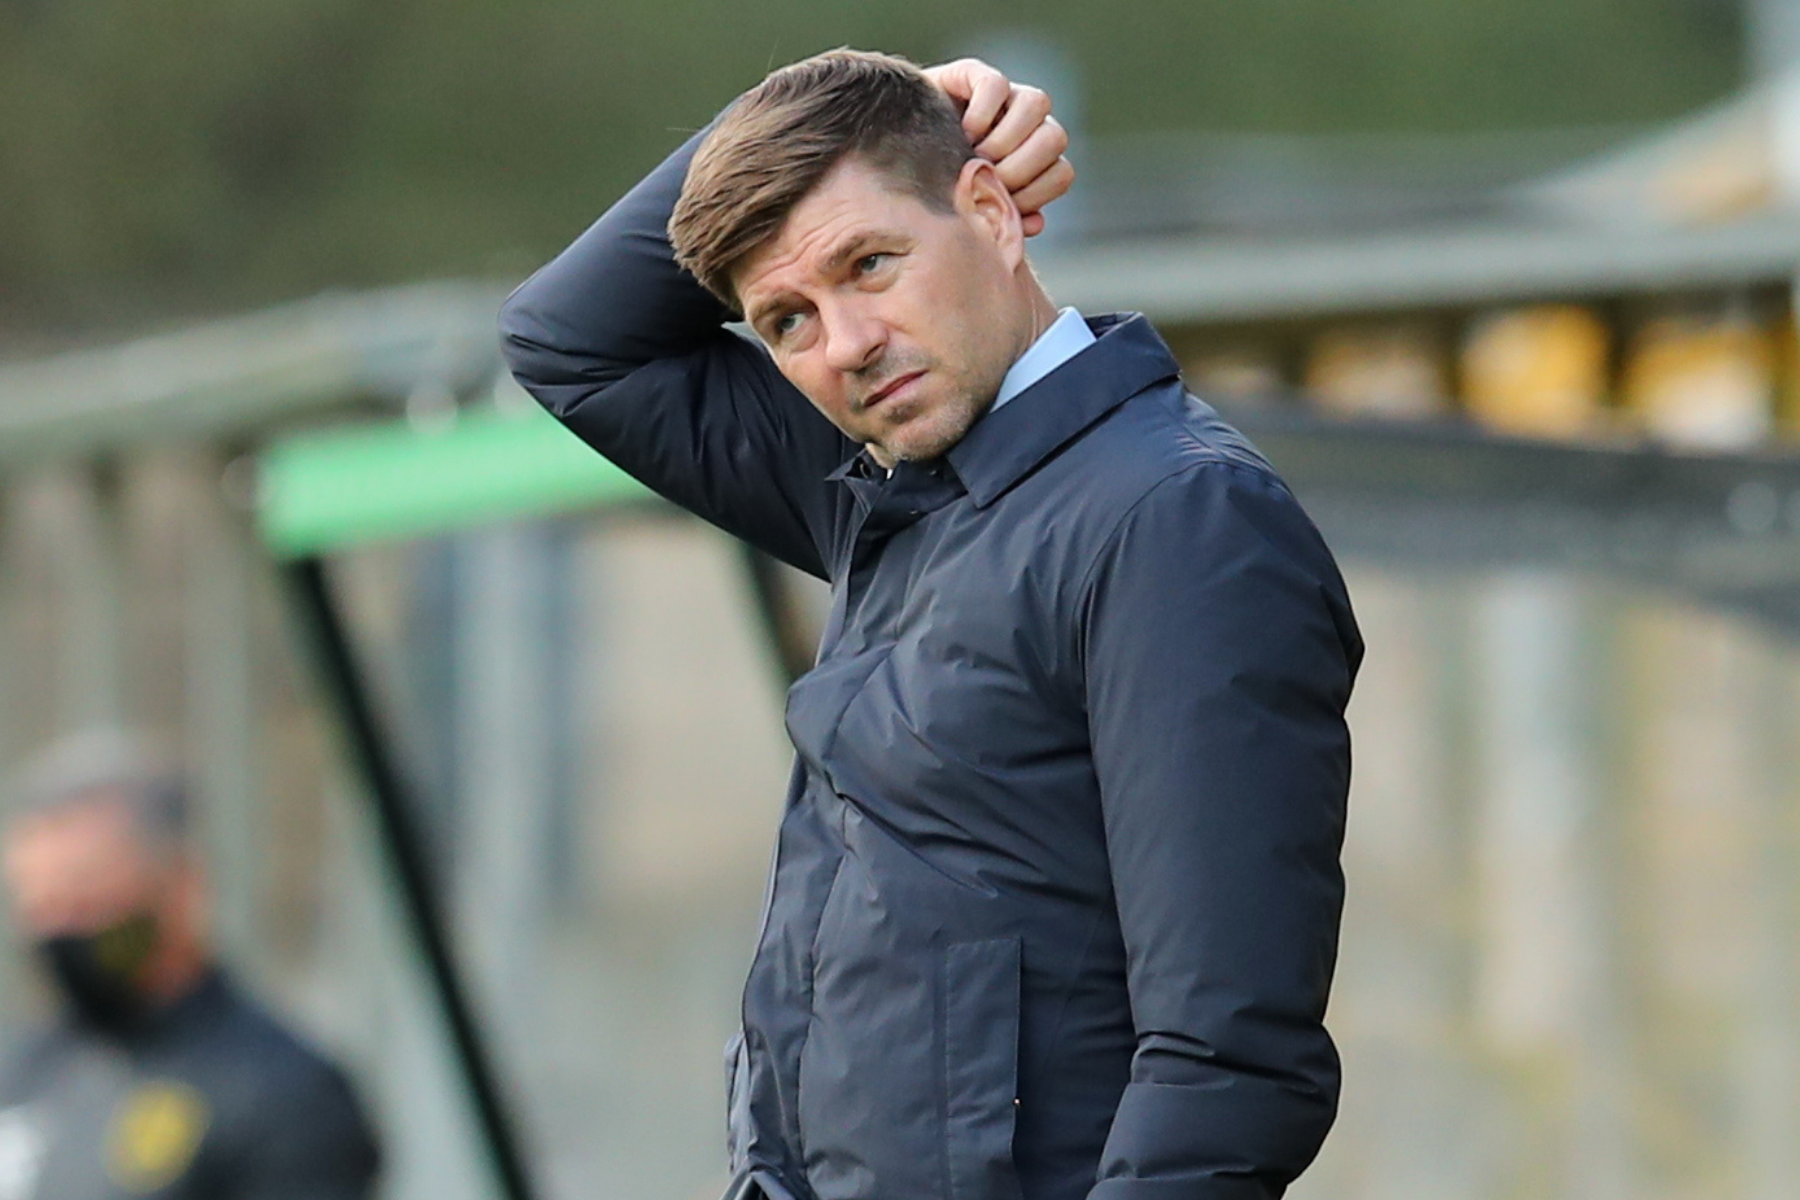 Rangers will need to sell players to balance books after Champions League exit, says Stewart